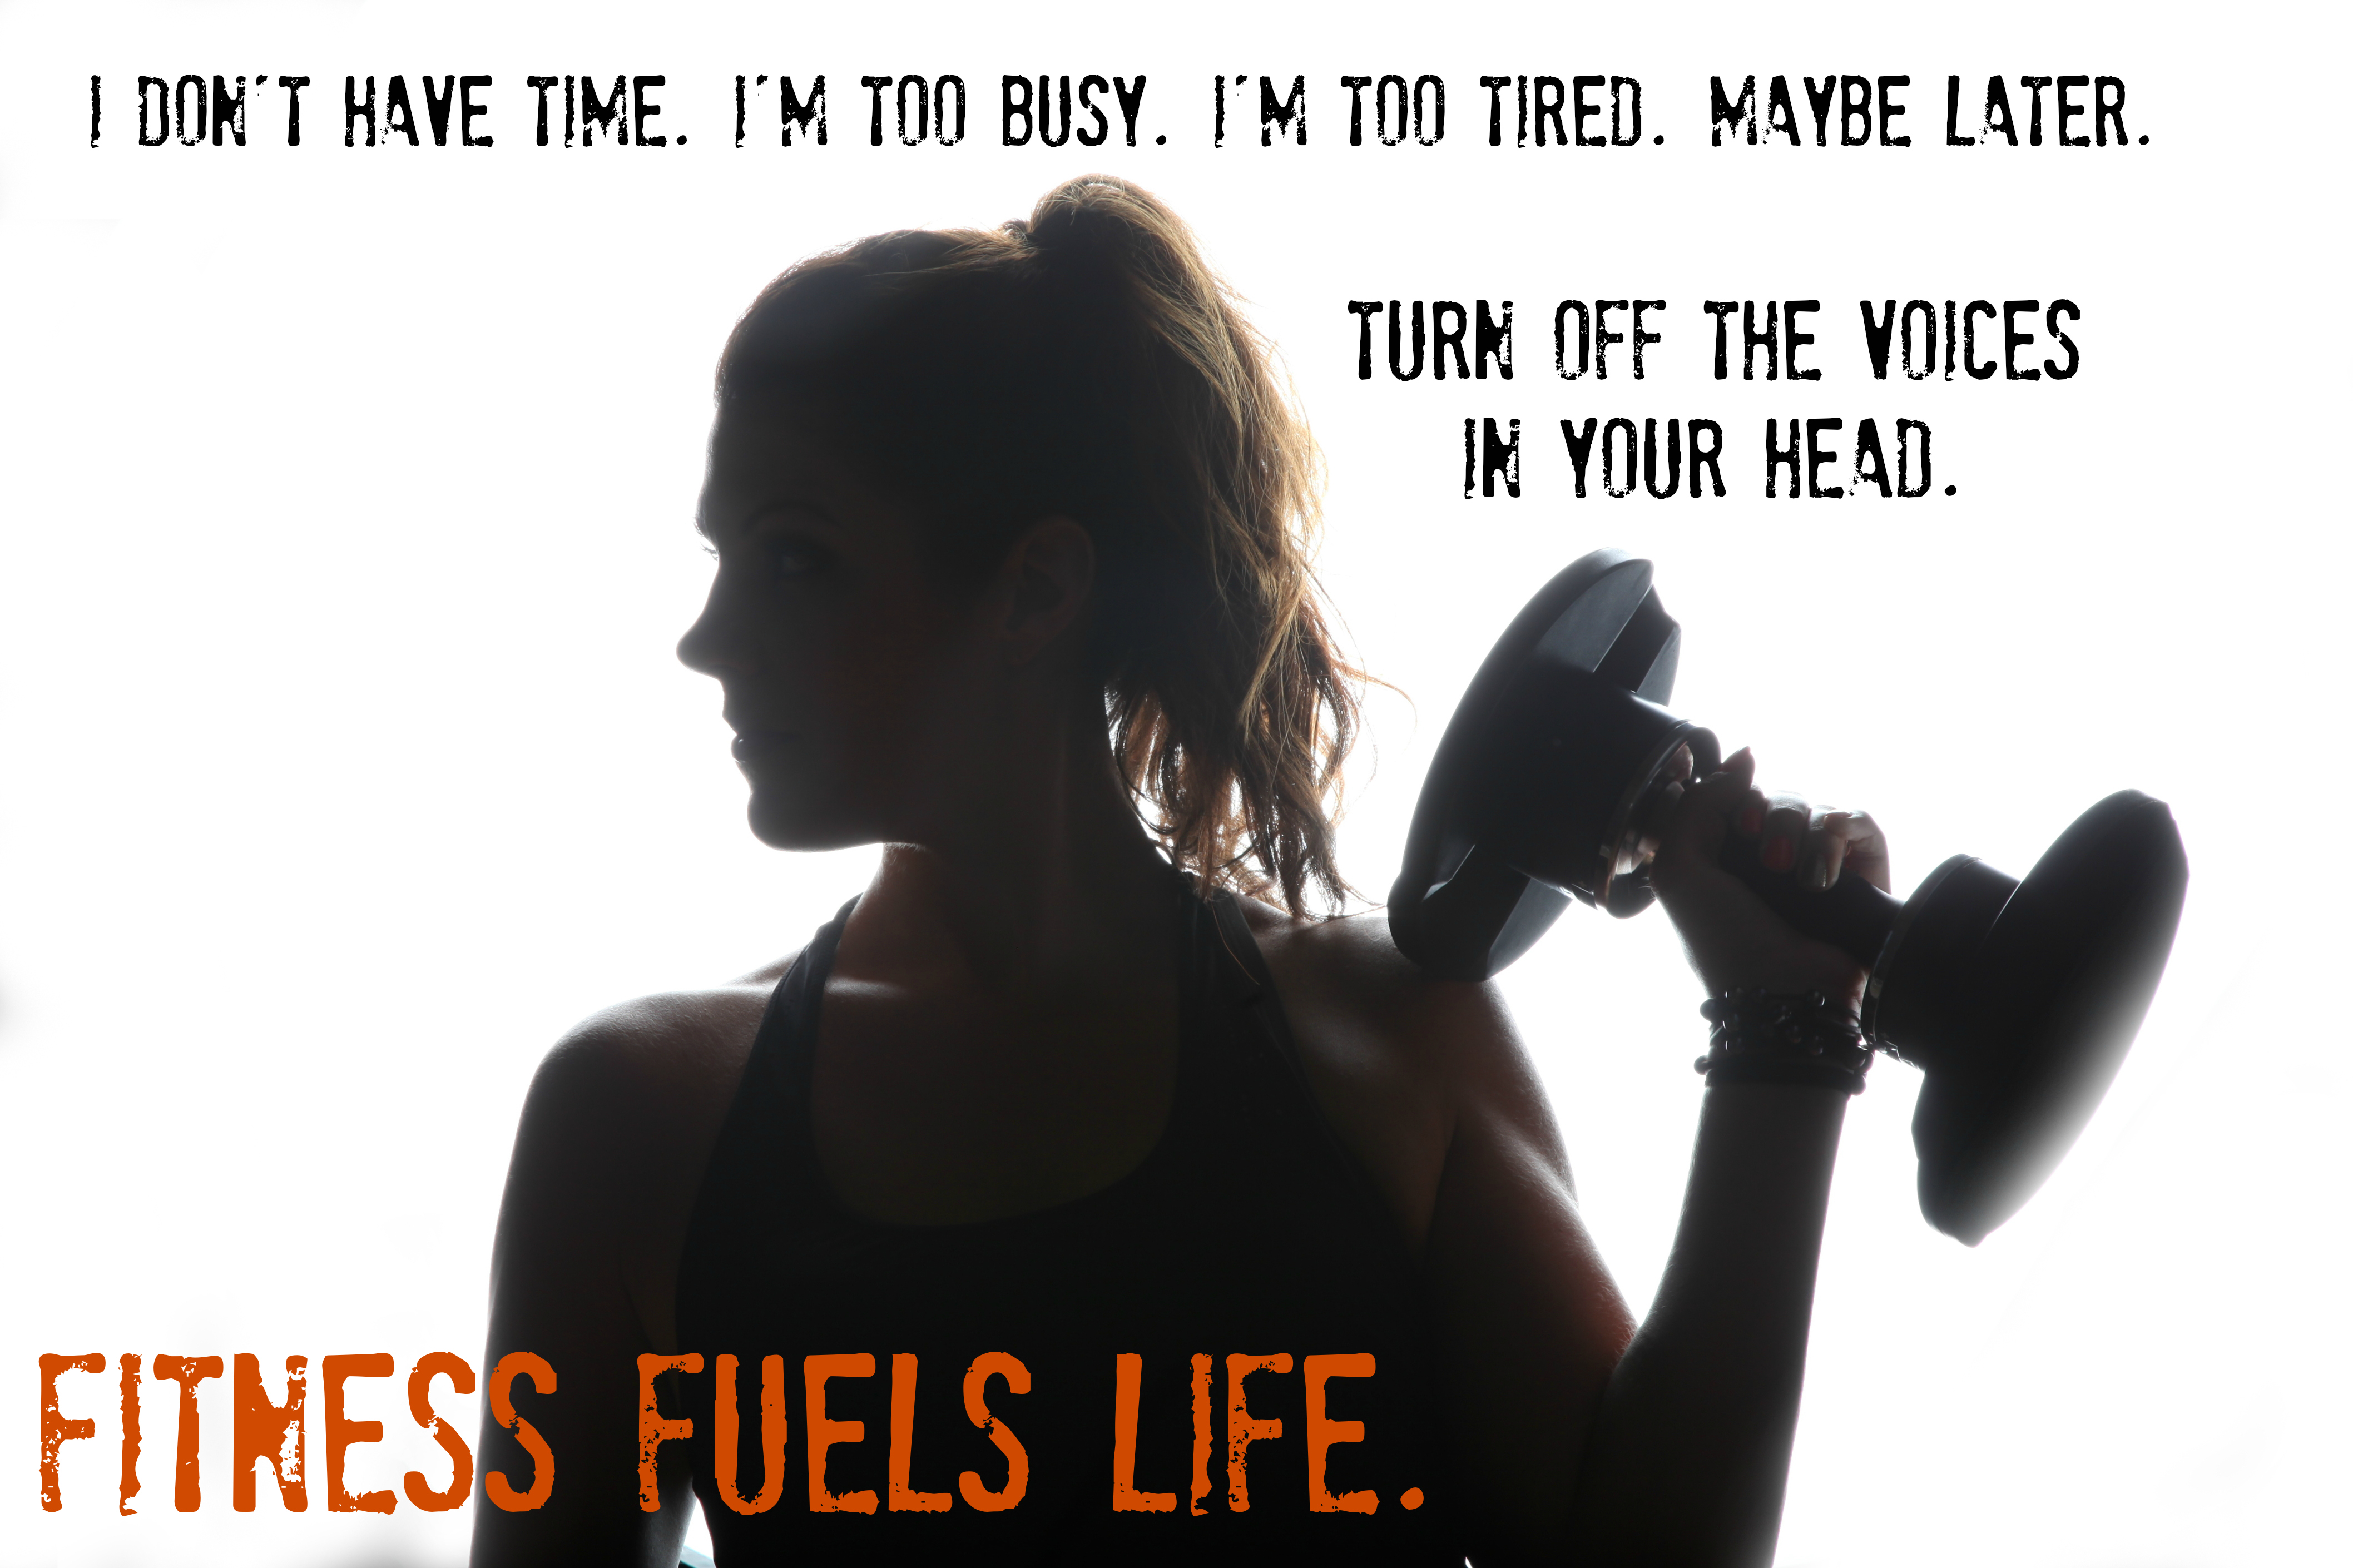 Fitness Fuels Life - Trina Gray